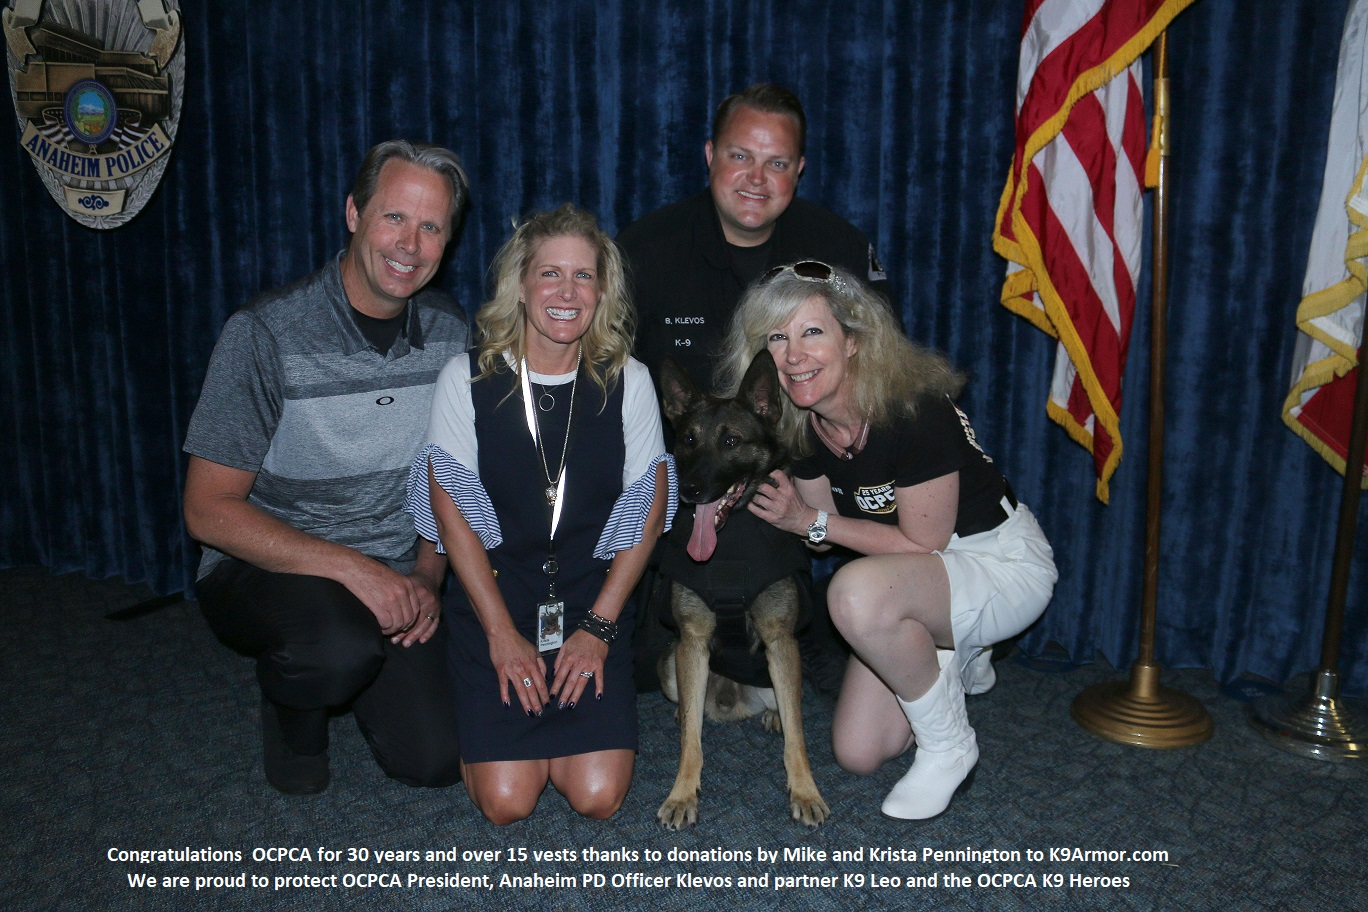 Orange County Police Canine Association President, Anaheim PD  Officer Klevos and K9 Leo with sponsors Mike and Krista Pennington with K9 Armor cofounder Suzanne Saunders